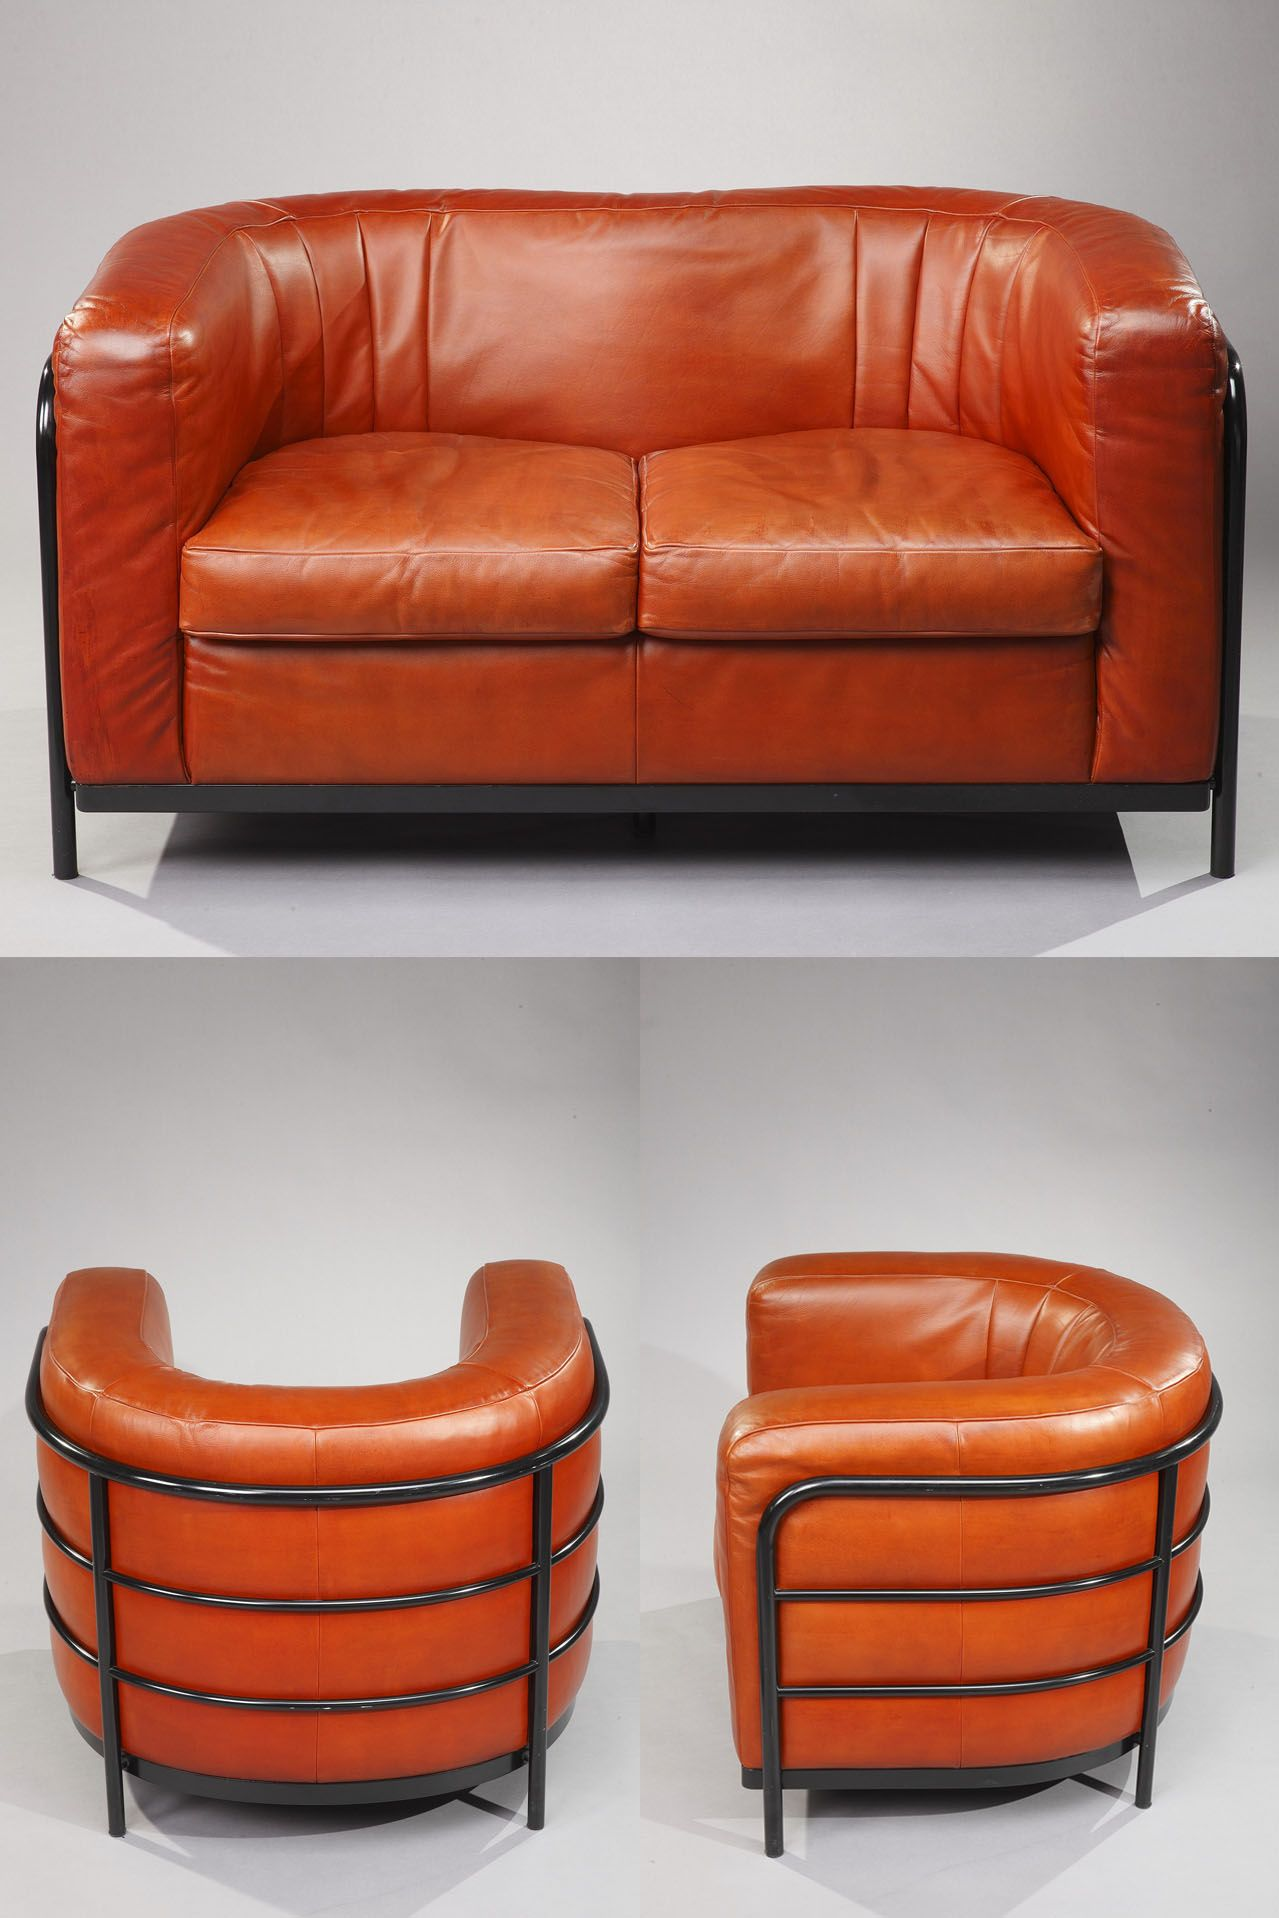 Onda Living Room Set Sofa And Armchairs By Zanotta Italy Leather Living Room Furniture Living Room Leather Furniture #orange #leather #living #room #sets